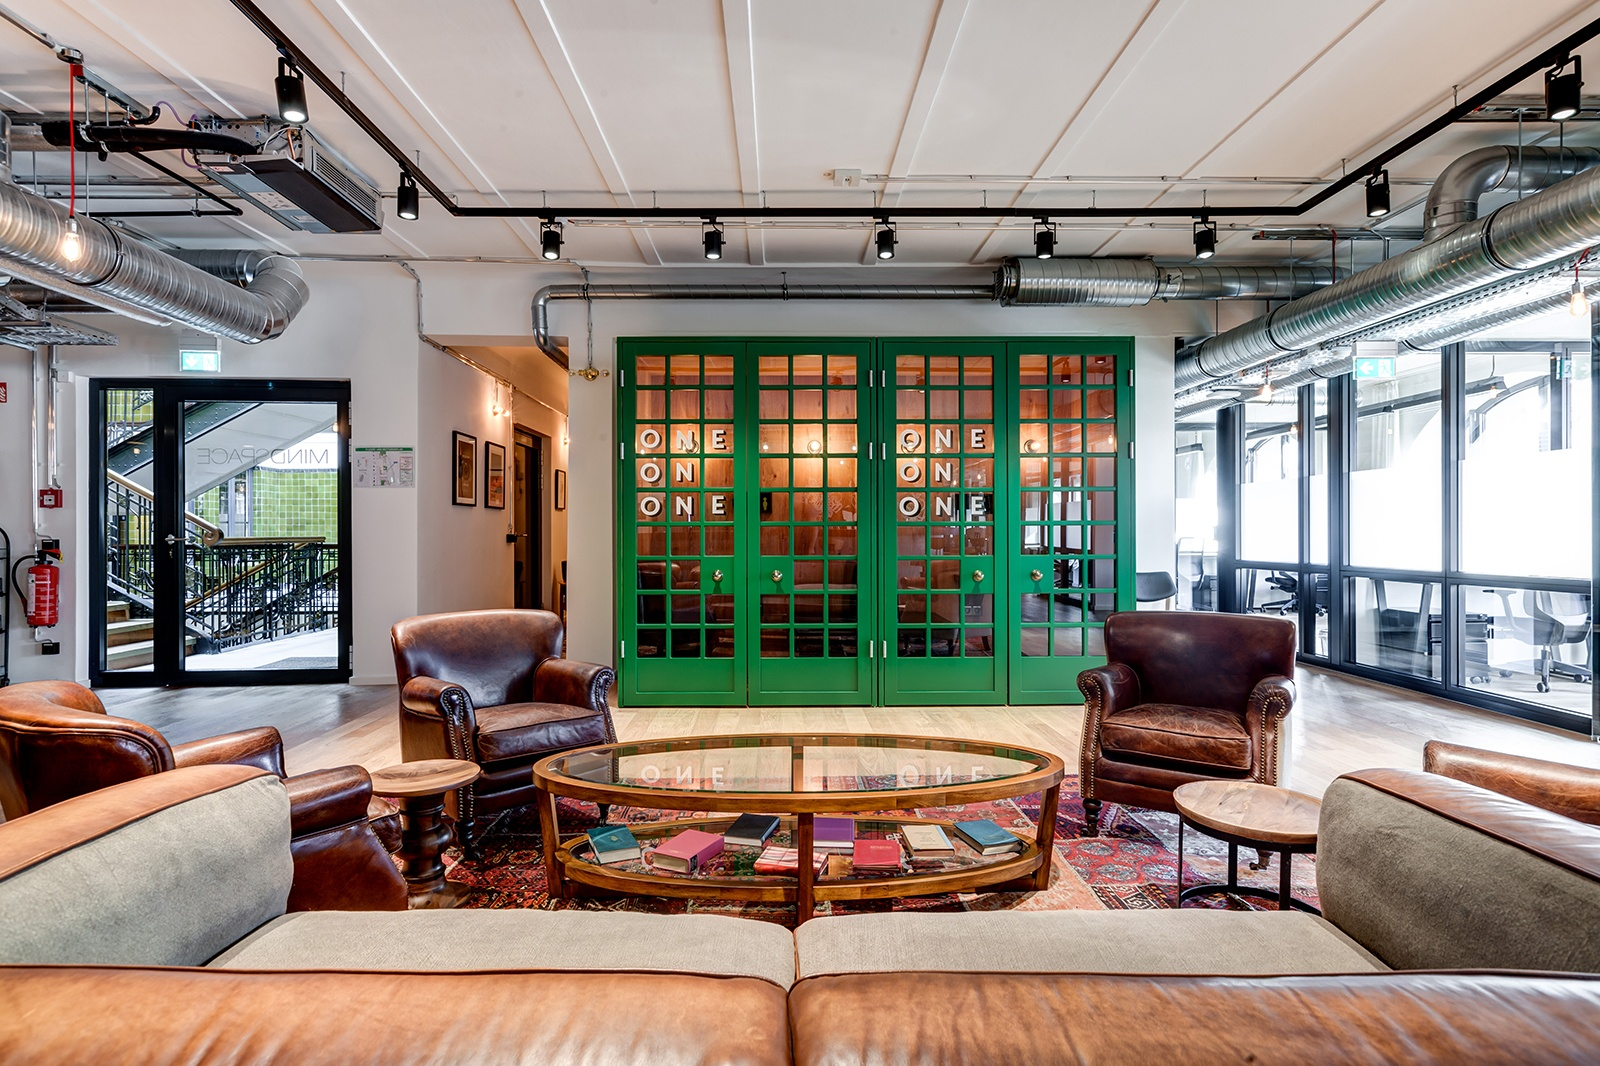 Small Home Design Ideas Photos: A Tour Of Mindspace's Super Cool Hamburg Coworking Space